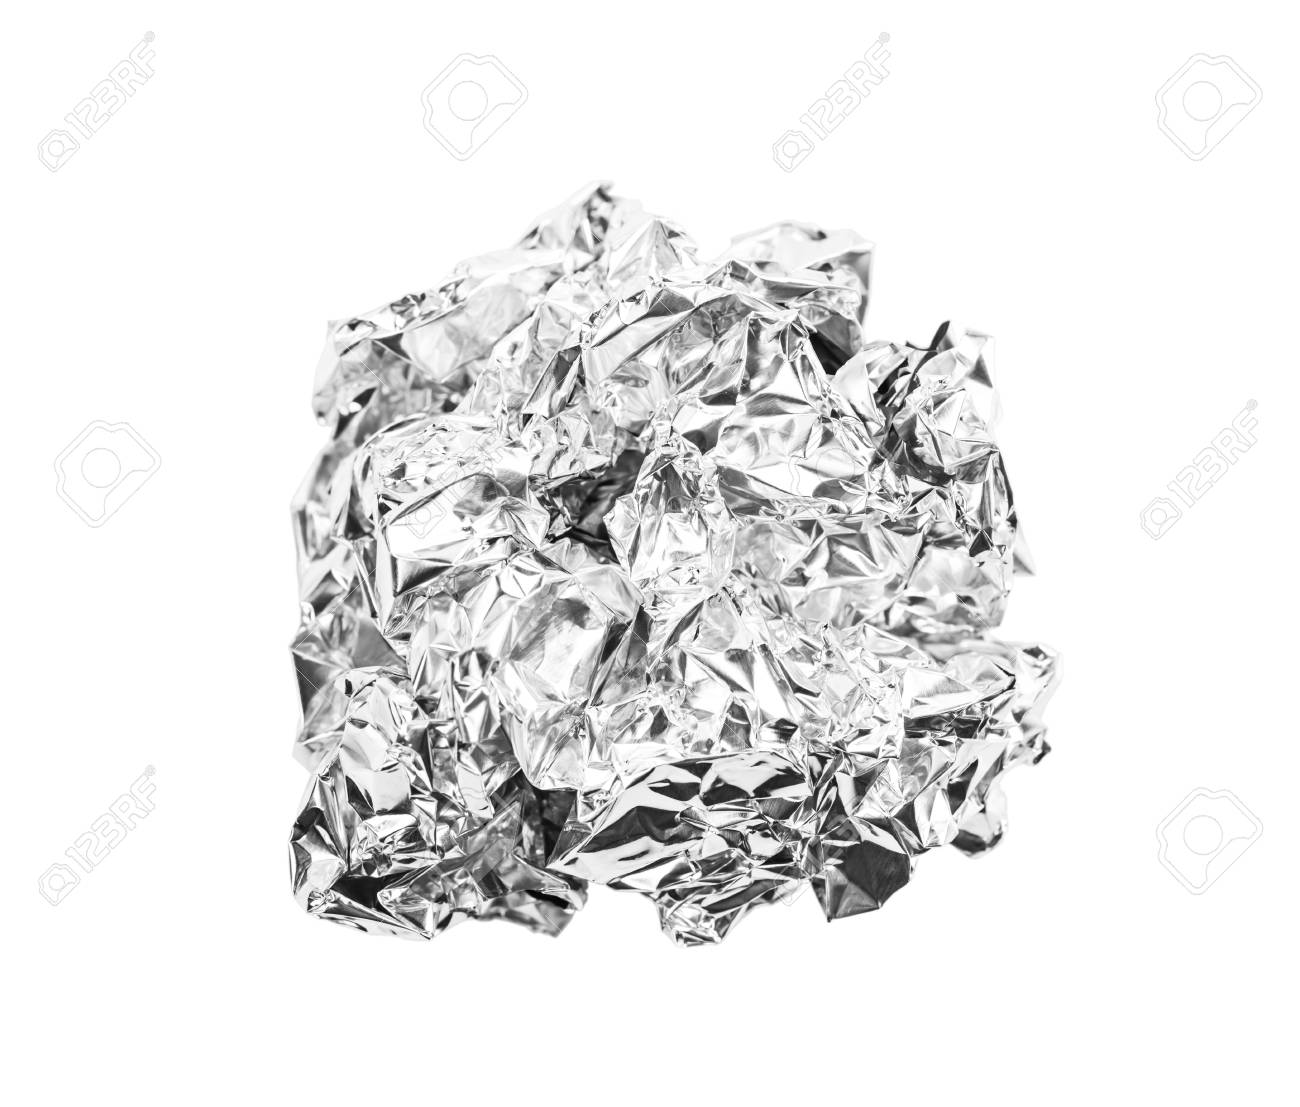 crumpled ball of aluminum foil isolated on white background, Save clipping path. - 123037593